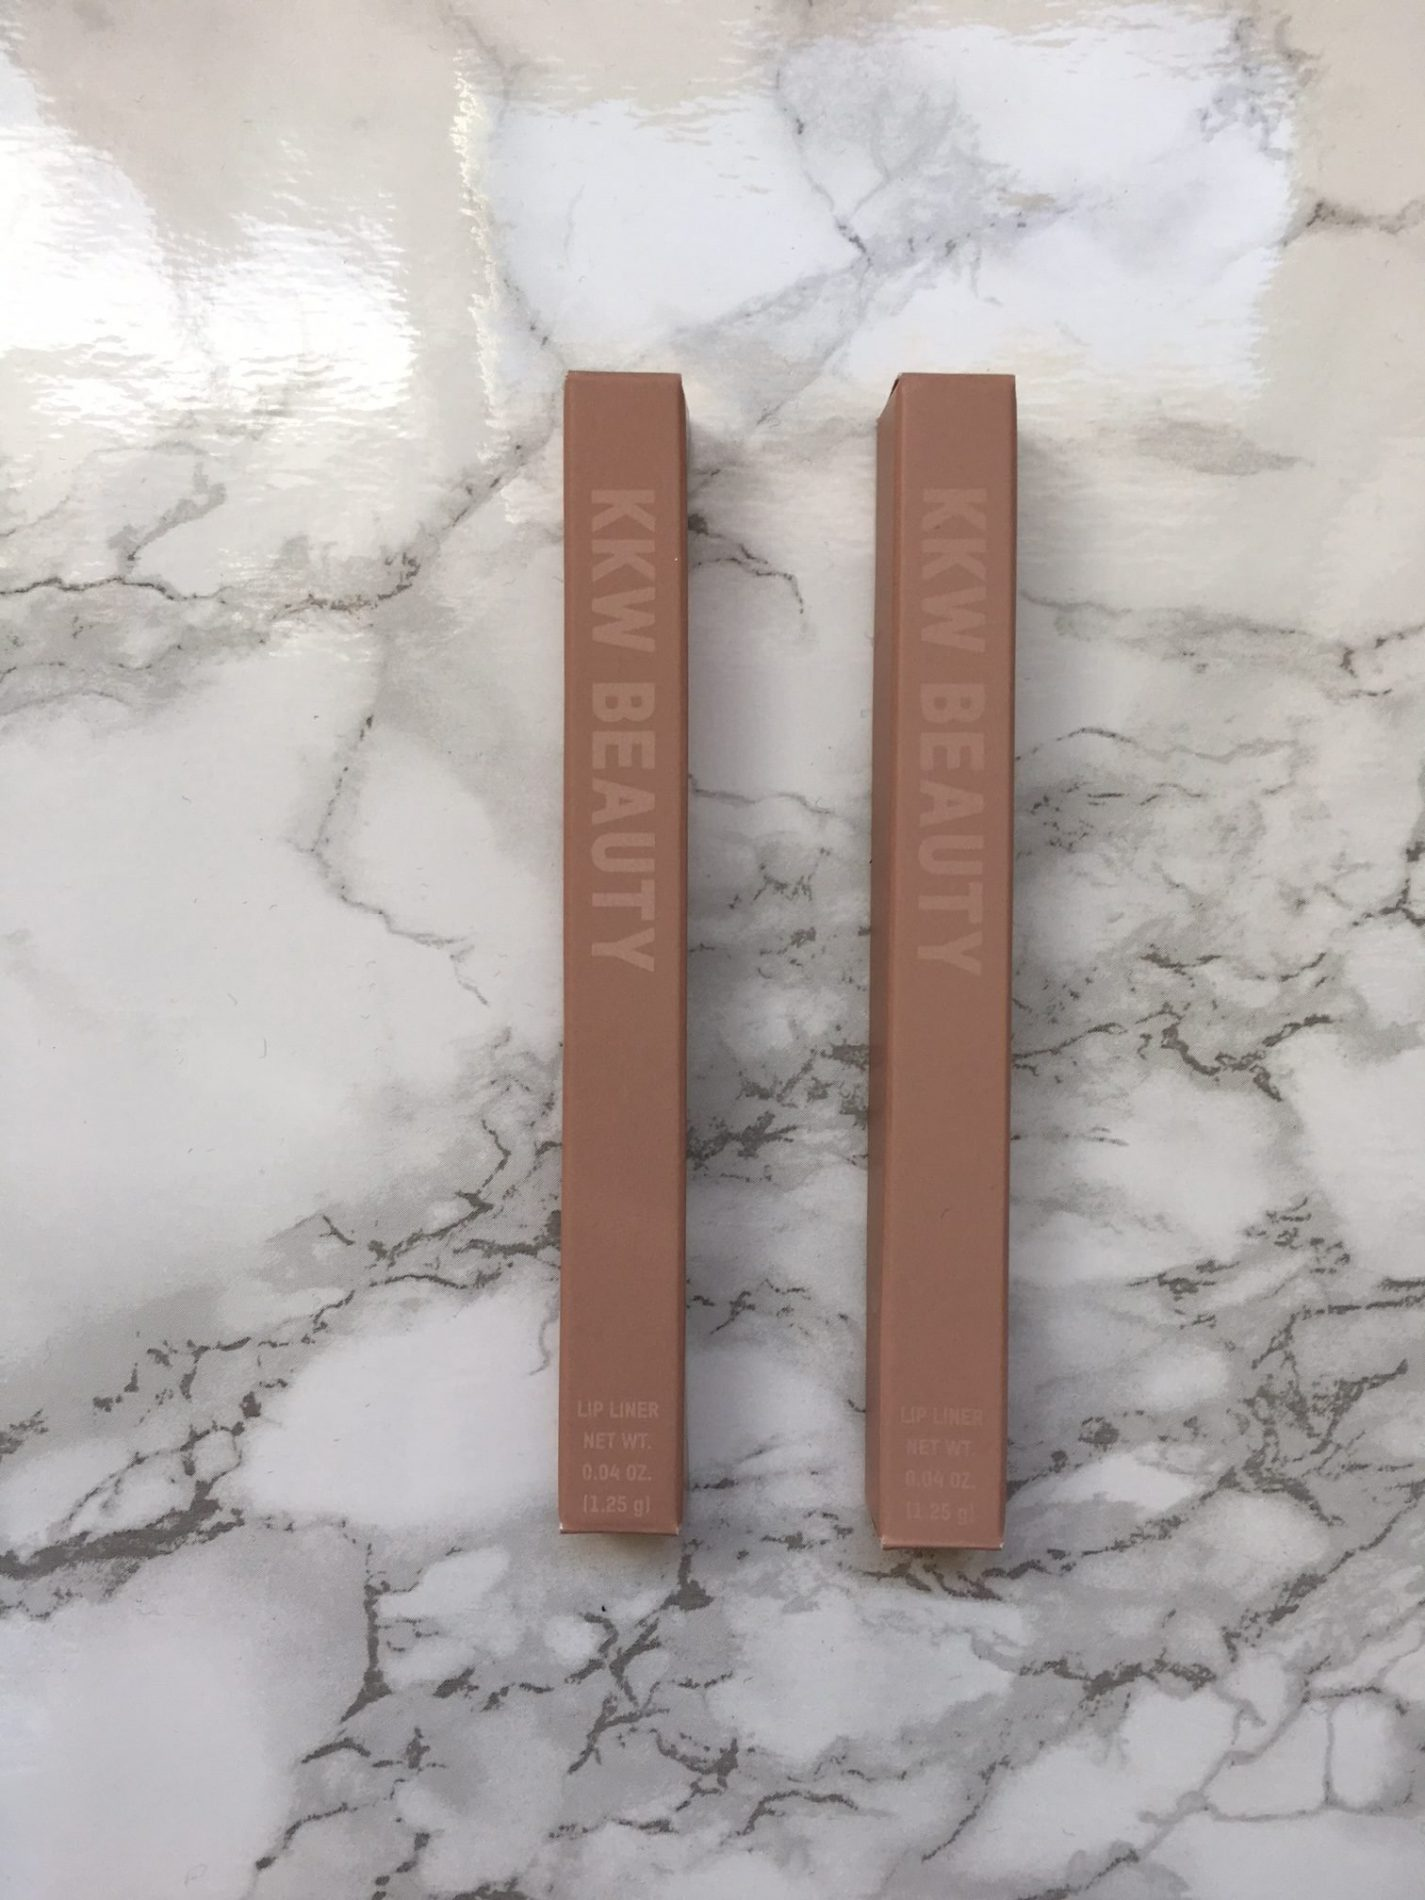 KKW Beauty Classic Collection Palette, Lipsticks & Lipliners | Review 7